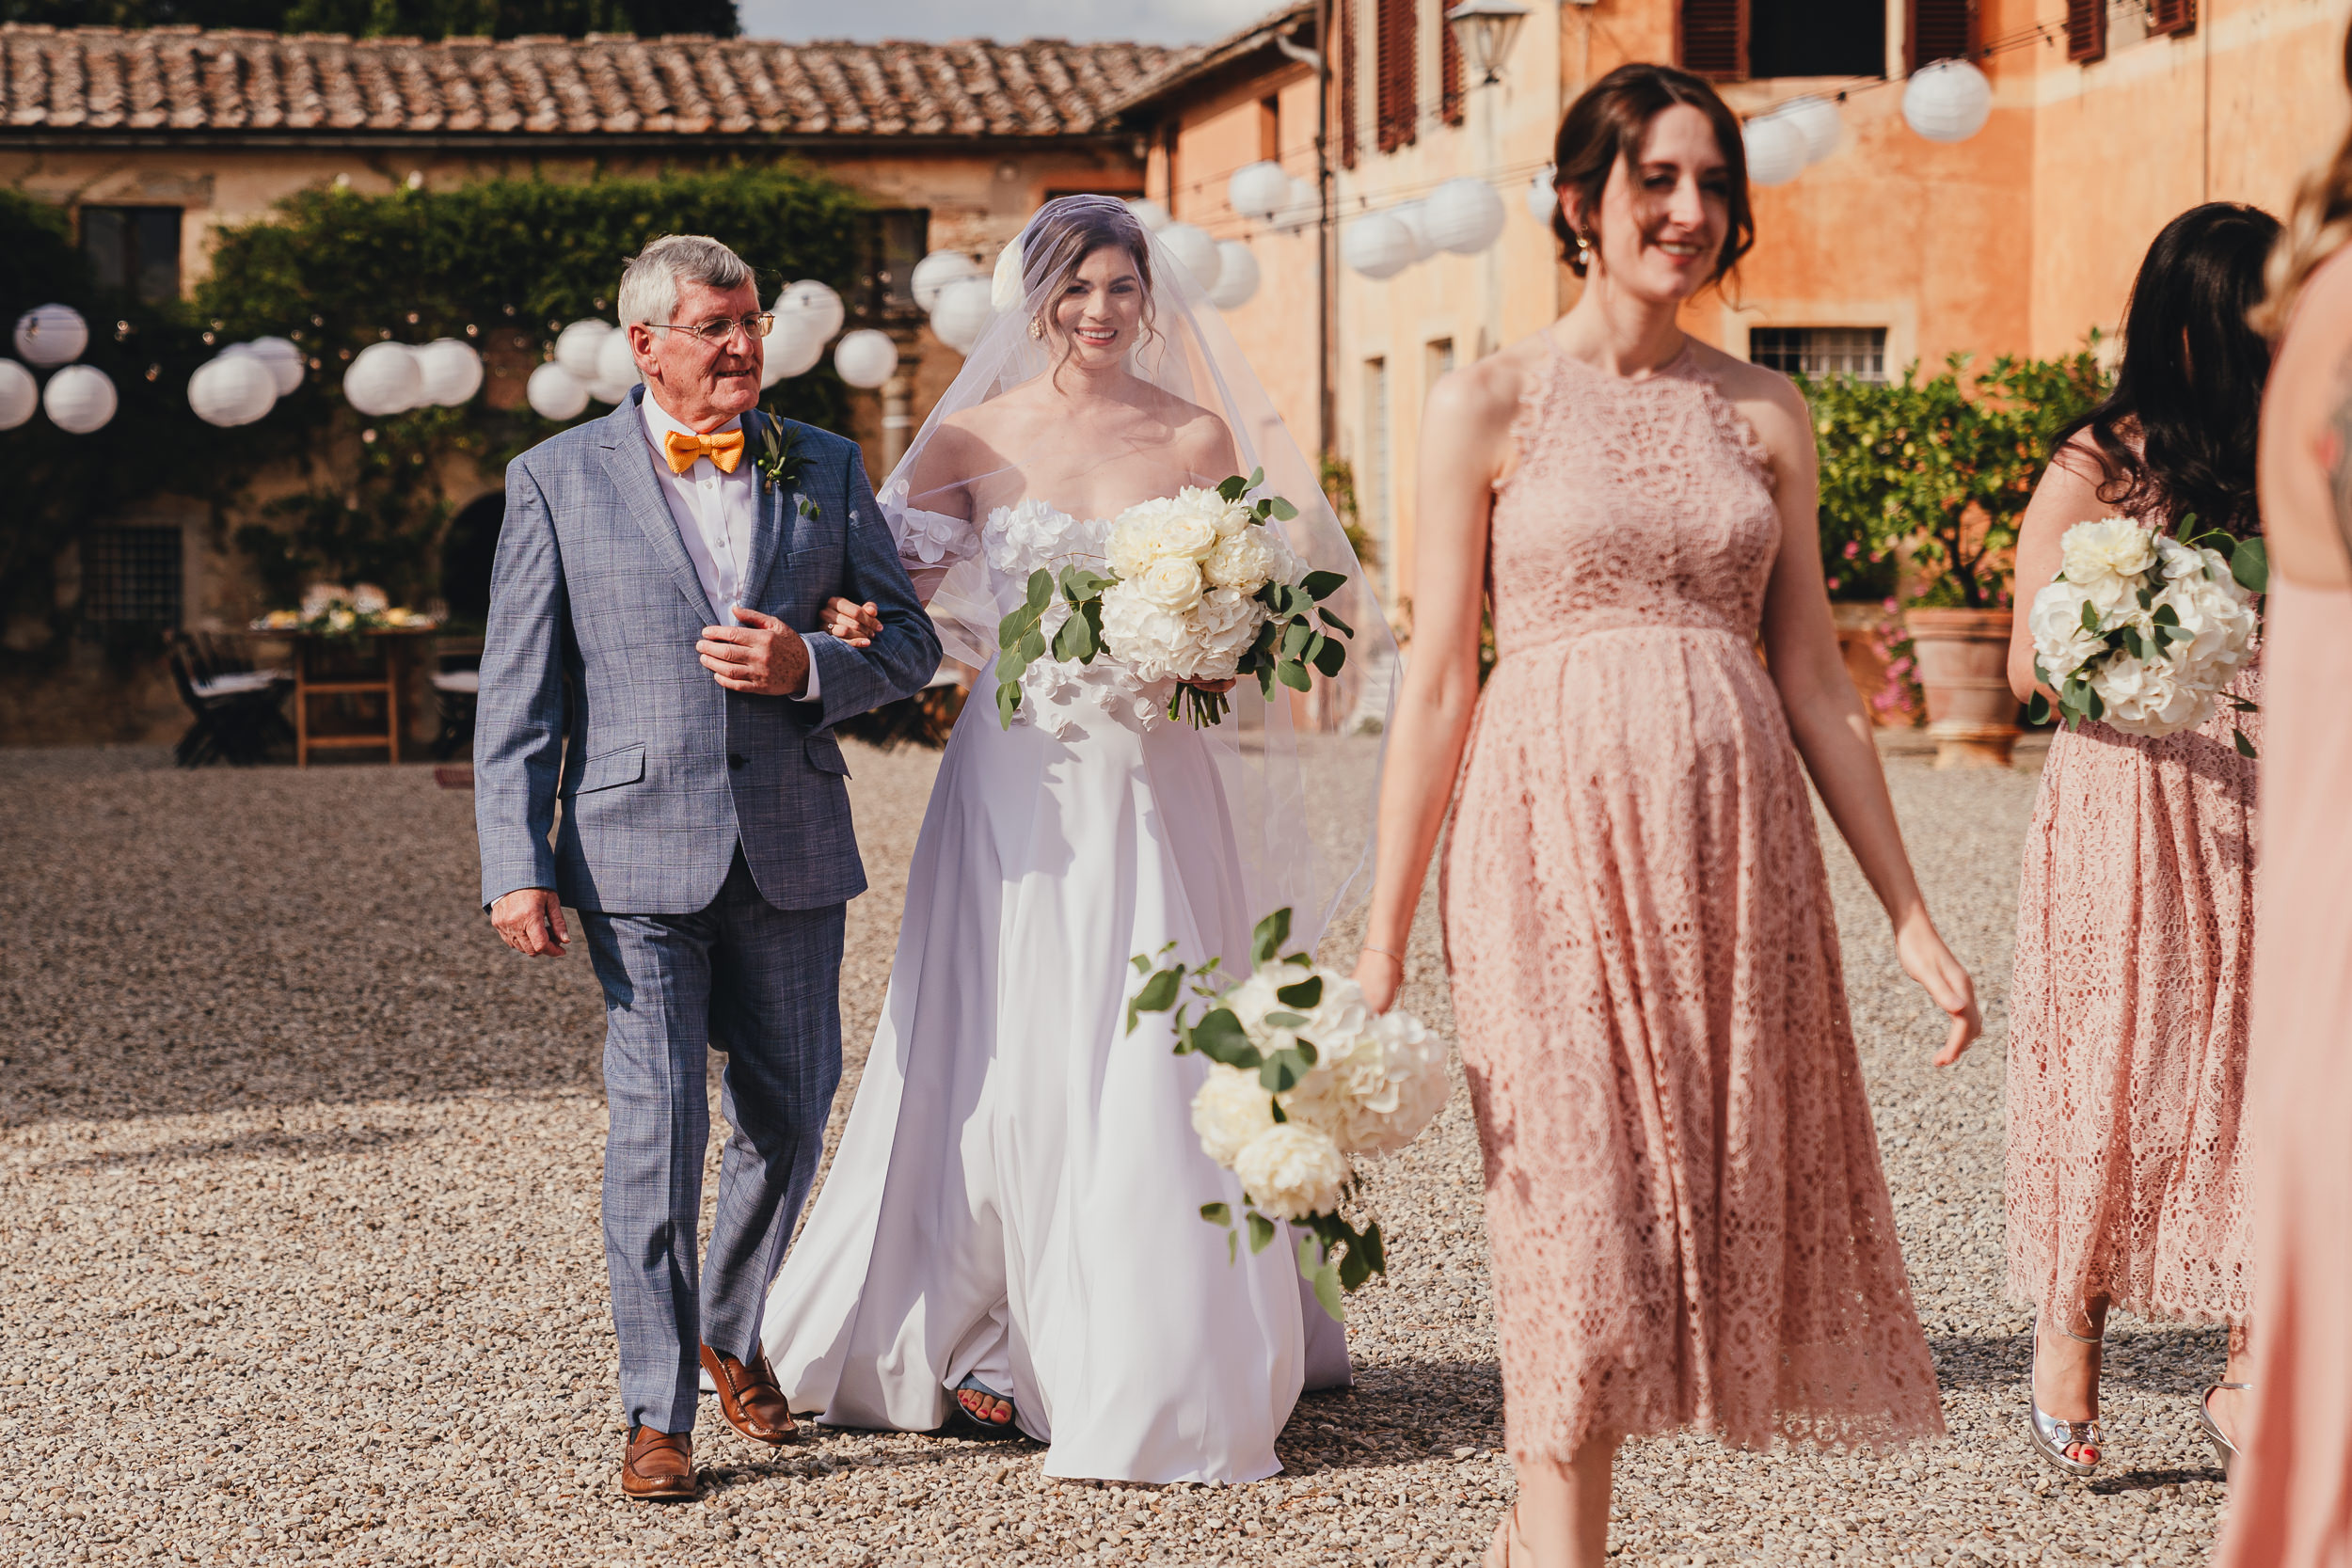 Tuscan Villa Wedding - The Bride walks to the ceremony with her Father and Bridesmaid